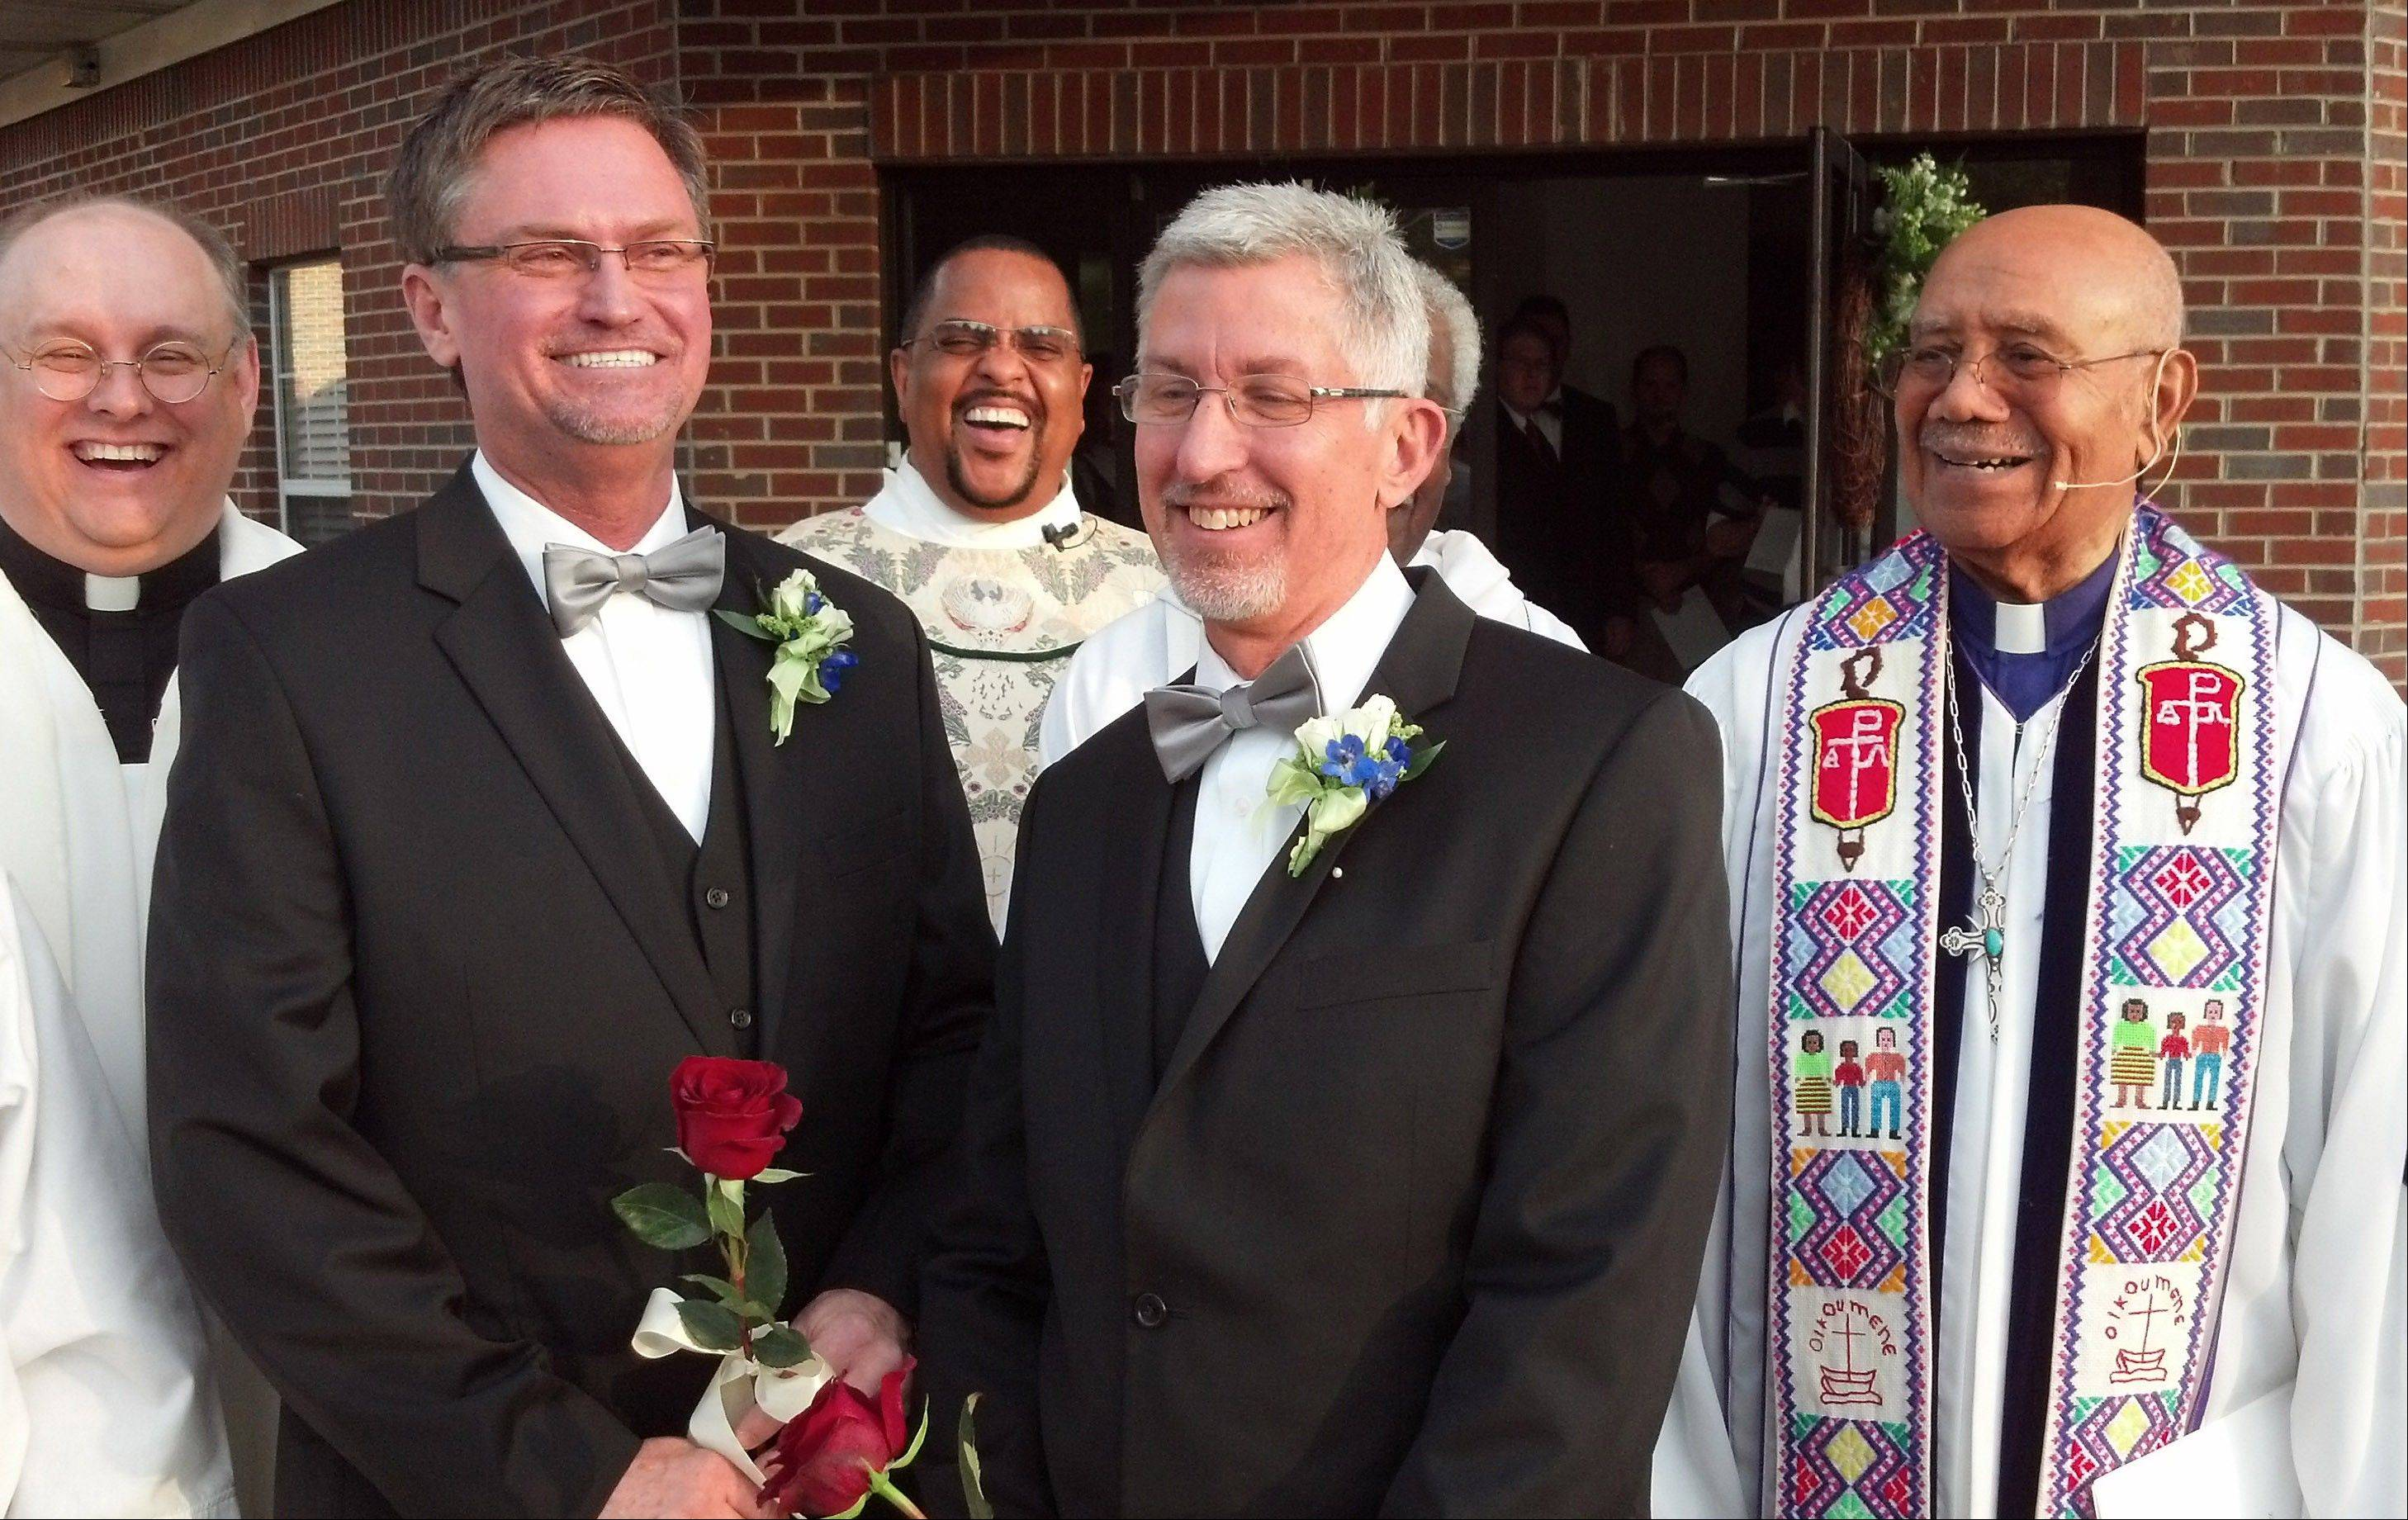 From left, the Rev. Kevin Higgs, Bobby Prince, the Rev. J.R. Finney, Joe Openshaw and retired Bishop Melvin Talbert stand together after Talbert officiated Prince and Openshaw's wedding in Birmingham, Ala. on Saturday, Oct. 26, 2013. The Council of Bishops has called for a formal complaint against Talbert, who presided at the wedding over the objections of a local bishop.